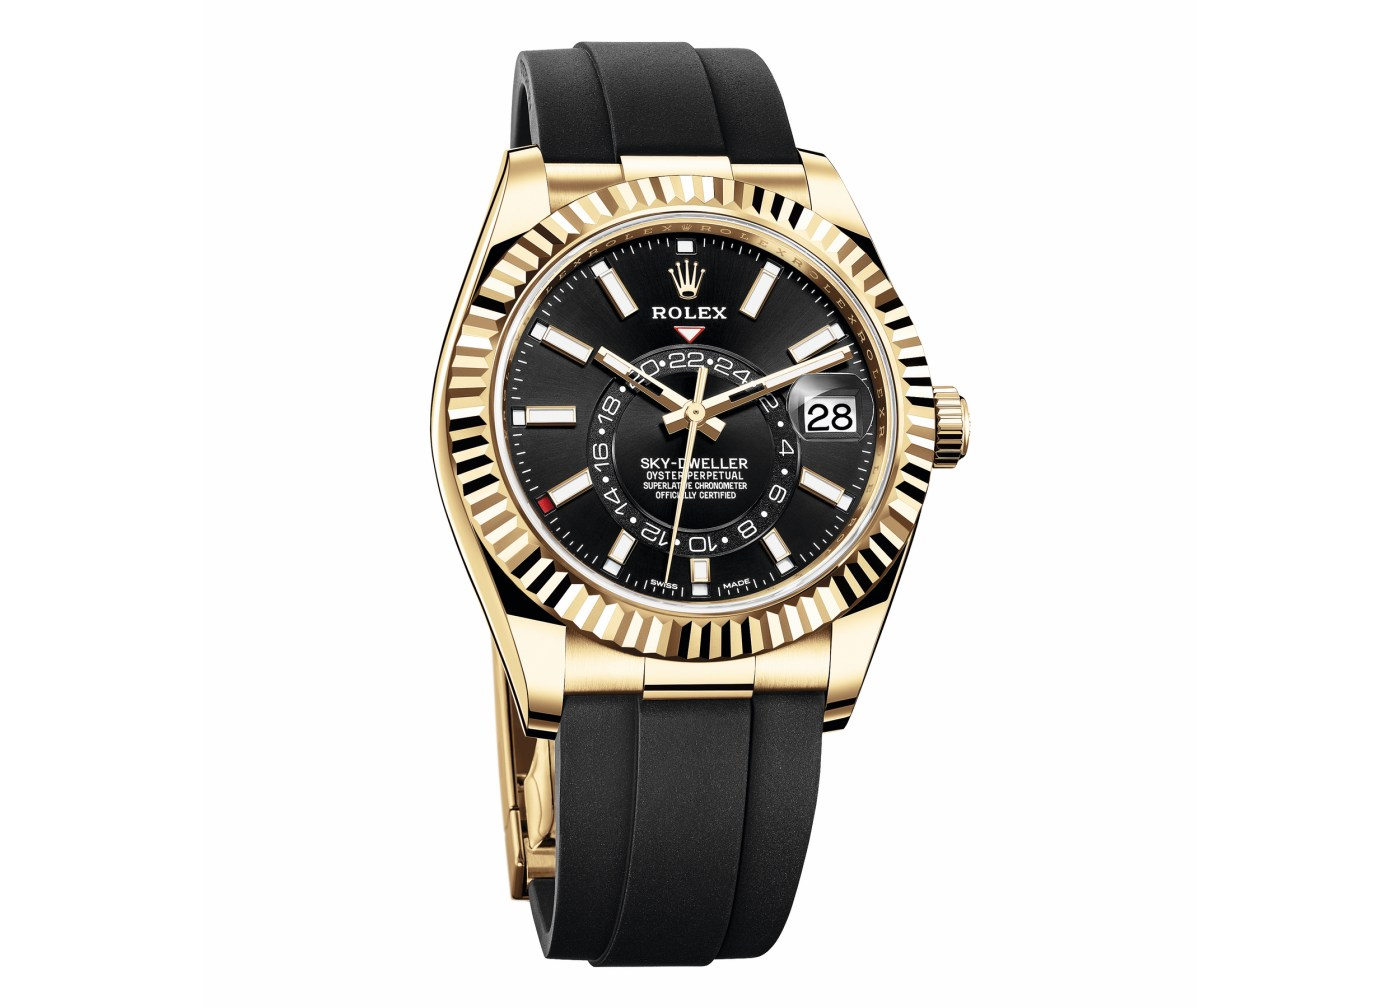 2020 Rolex Oyster Perpetual Sky-Dweller-Yellow Gold with Oysterflex